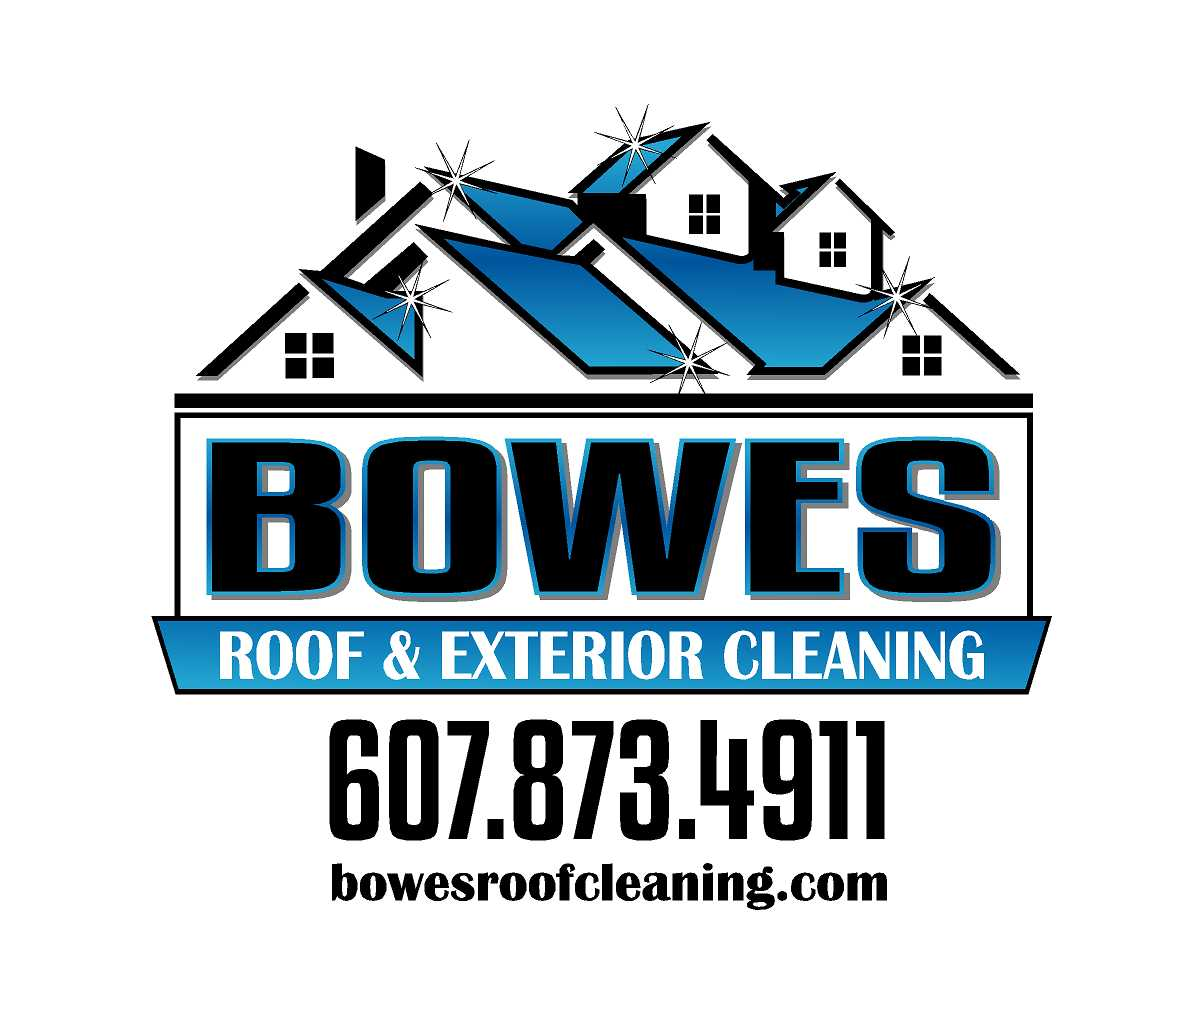 Bowes Roof and Exterior Cleaning